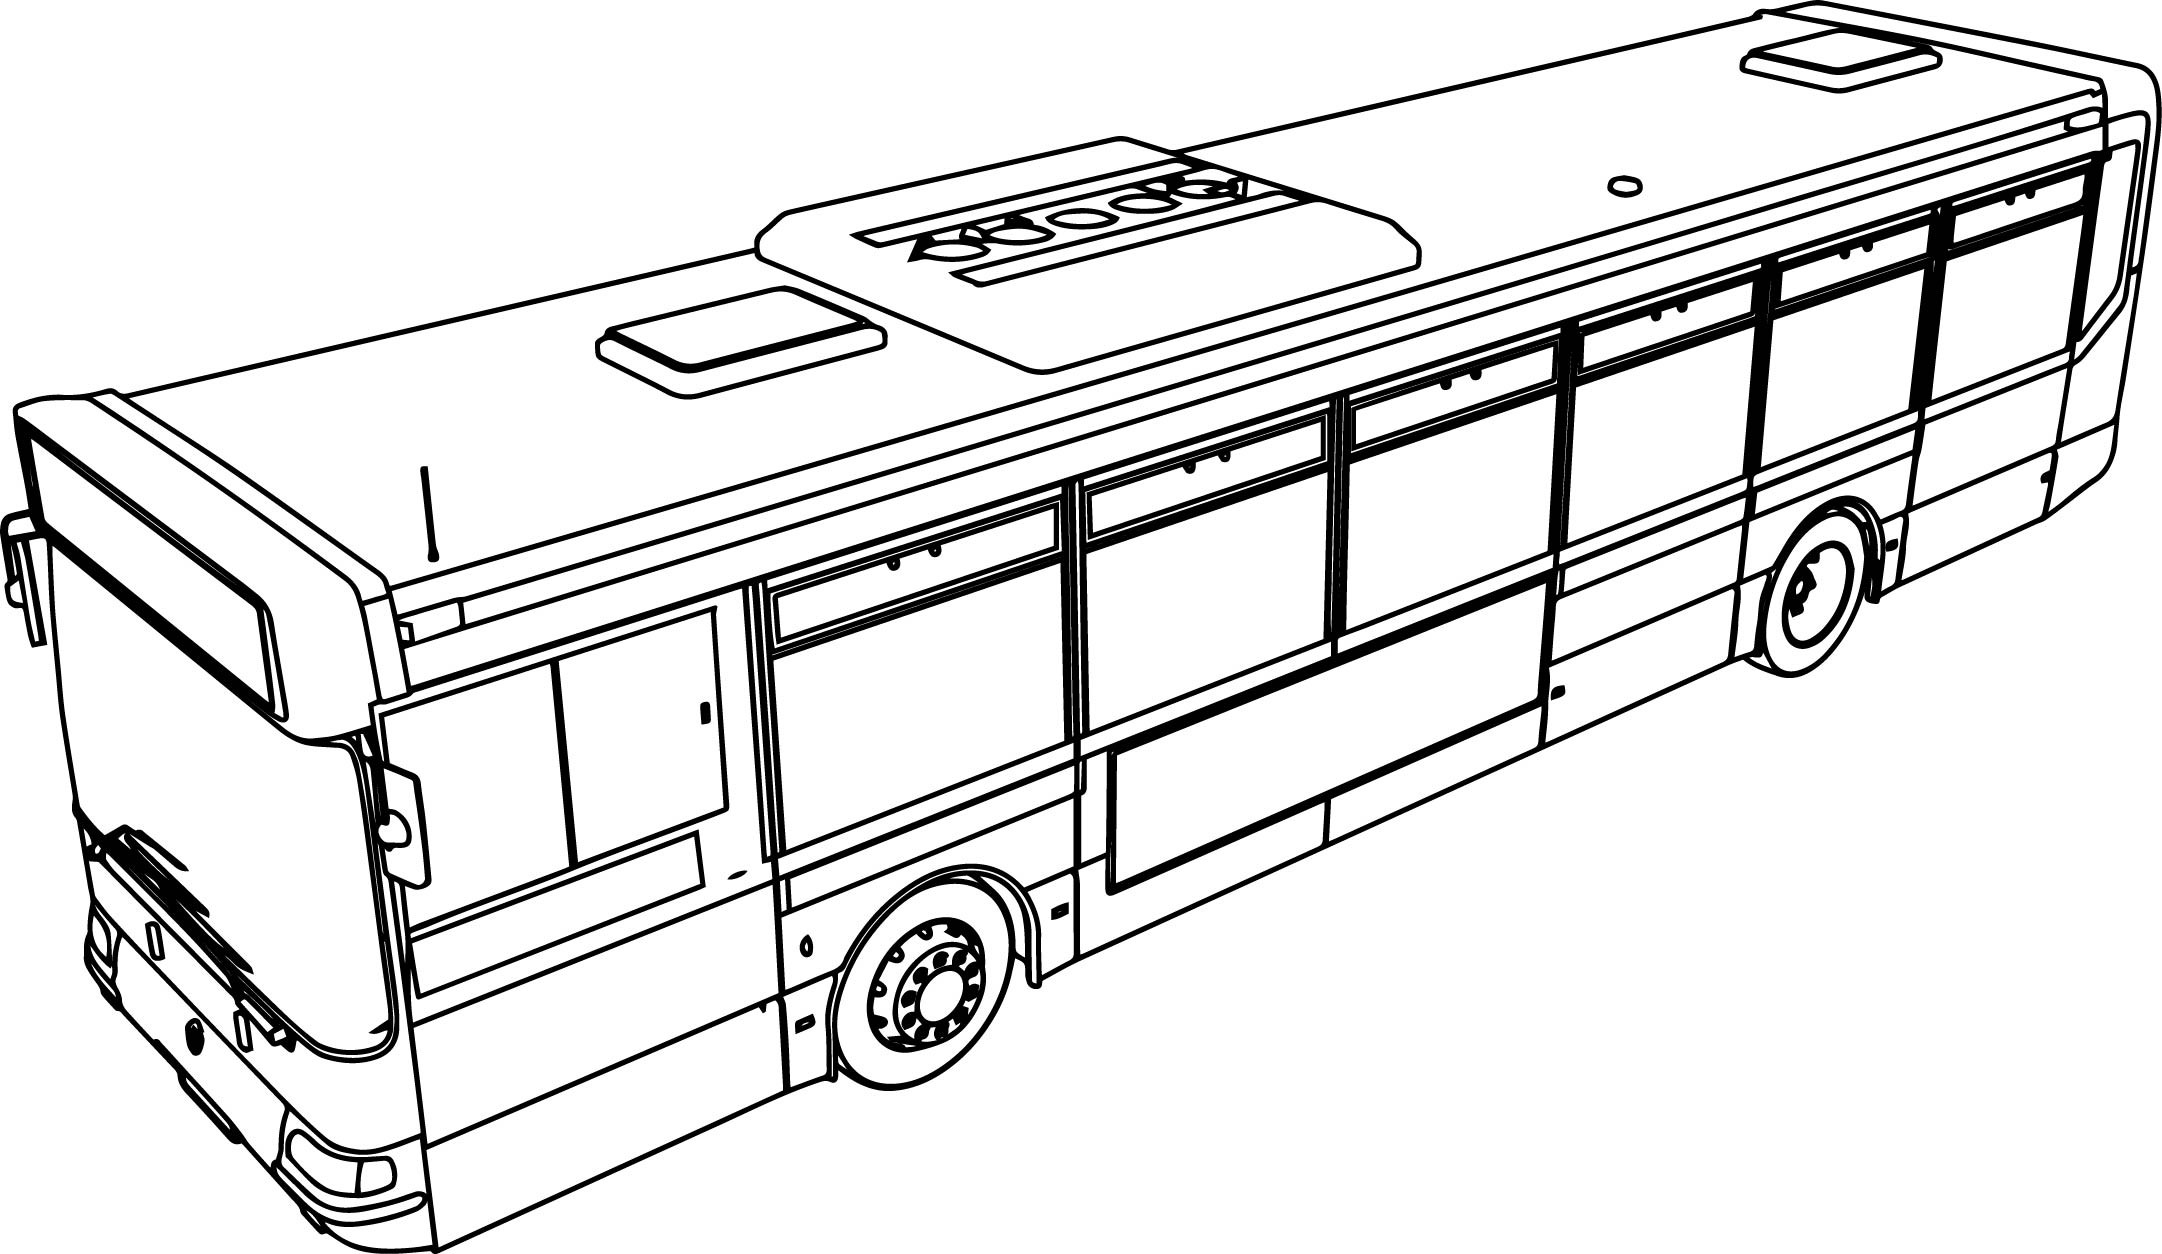 drawing of bus school bus 66 by jake jacobs bus drawing of